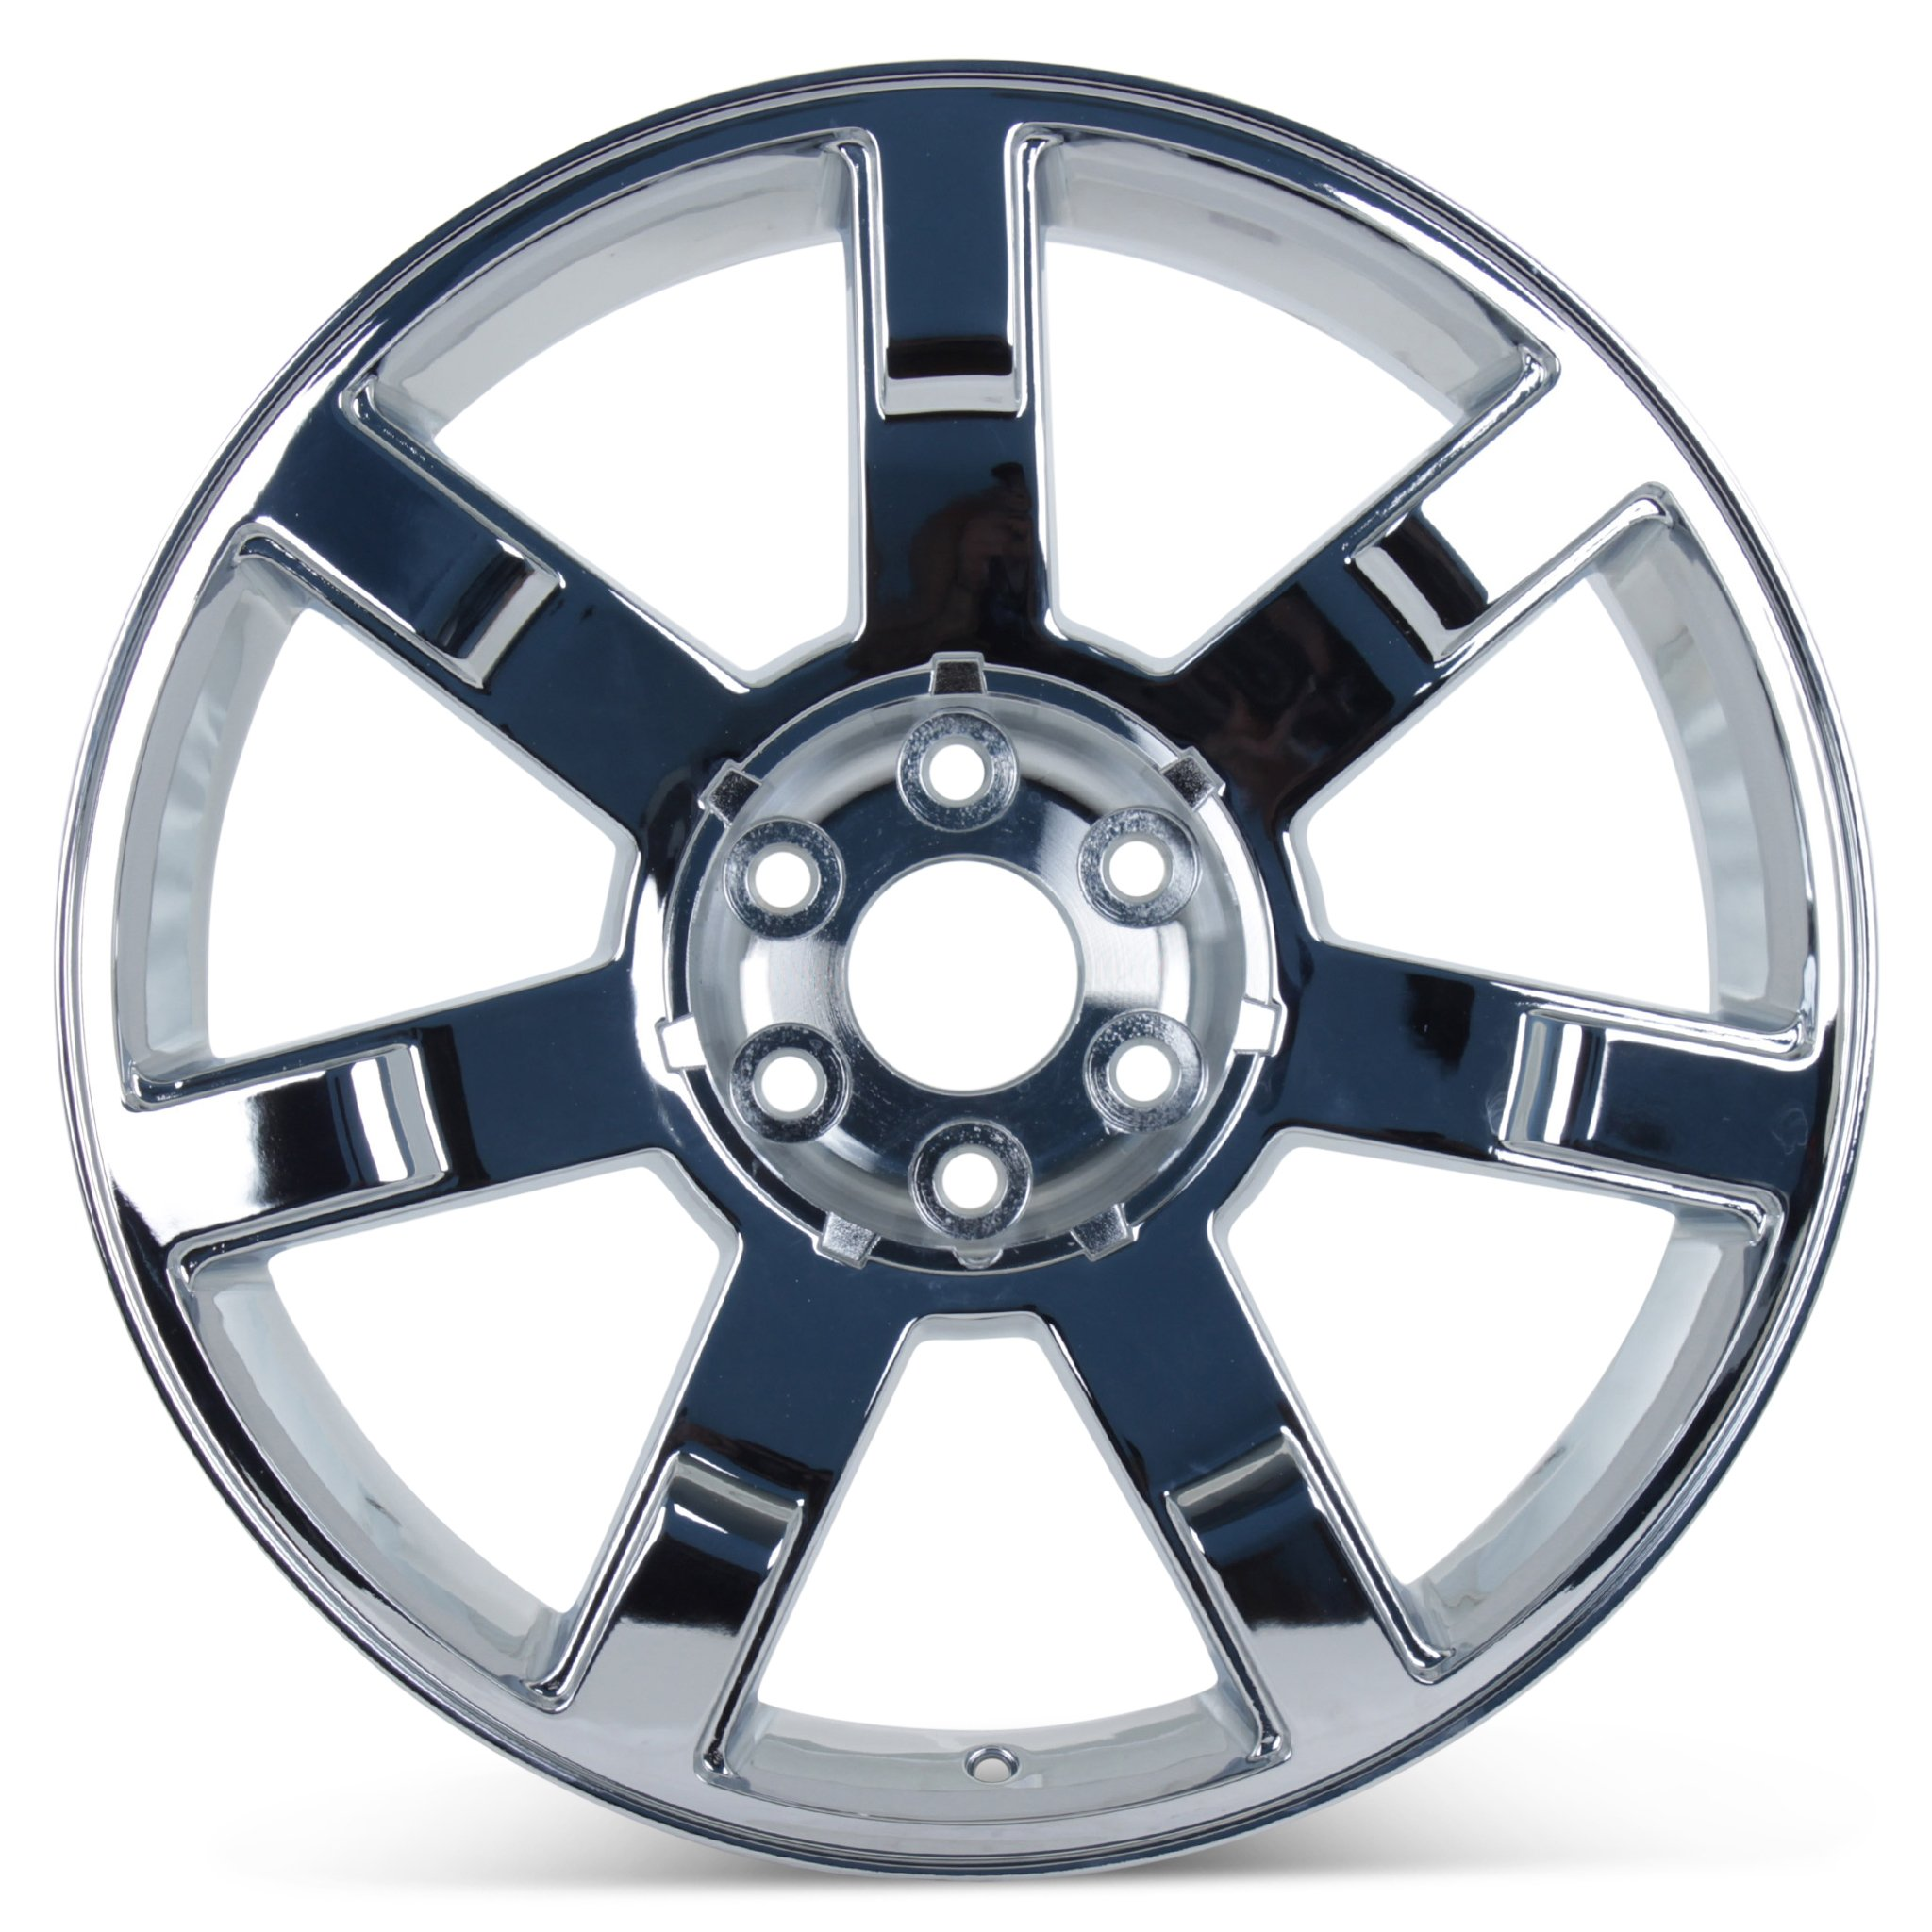 New 22'' x 9'' Replacement Wheel for Cadillac Escalade 2007-2013 Rim Chrome 5309 by Cadillac (Image #2)